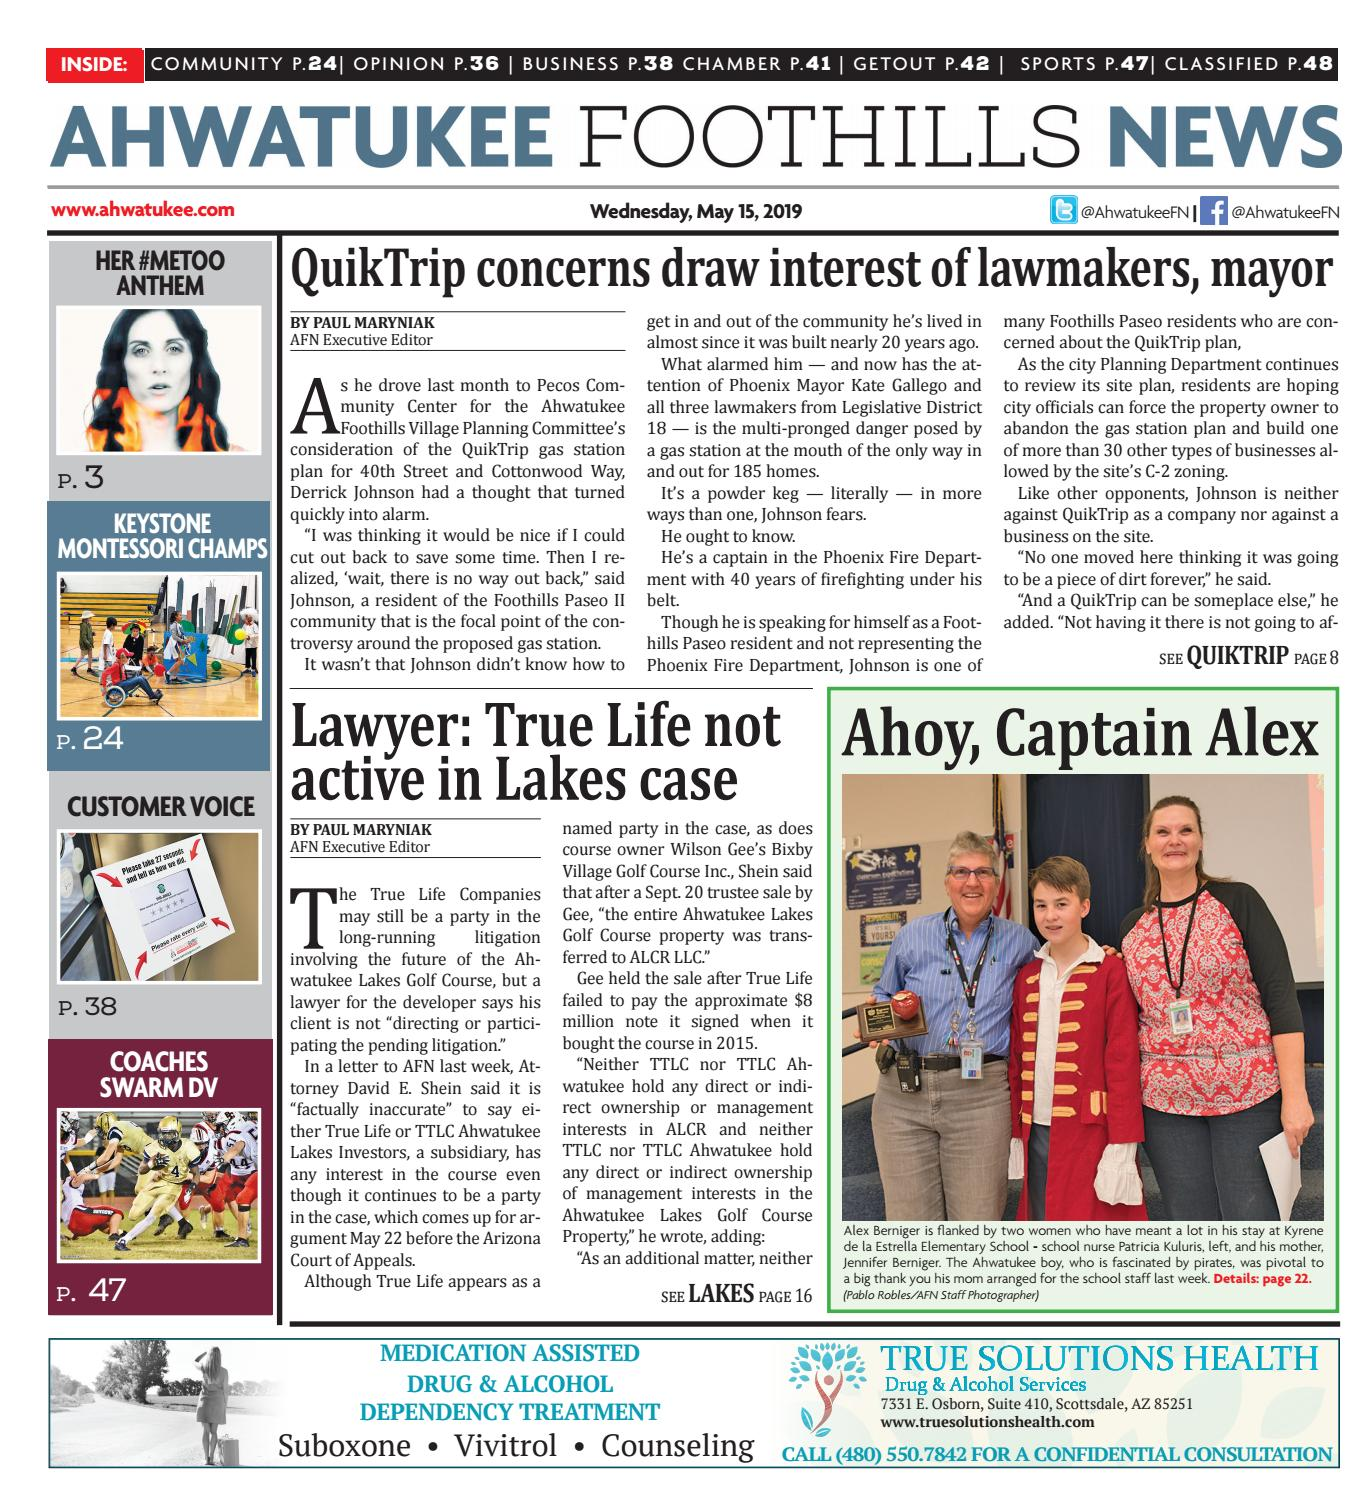 Ahwatukee Foothills News - May 15, 2019 by Times Media Group - issuu